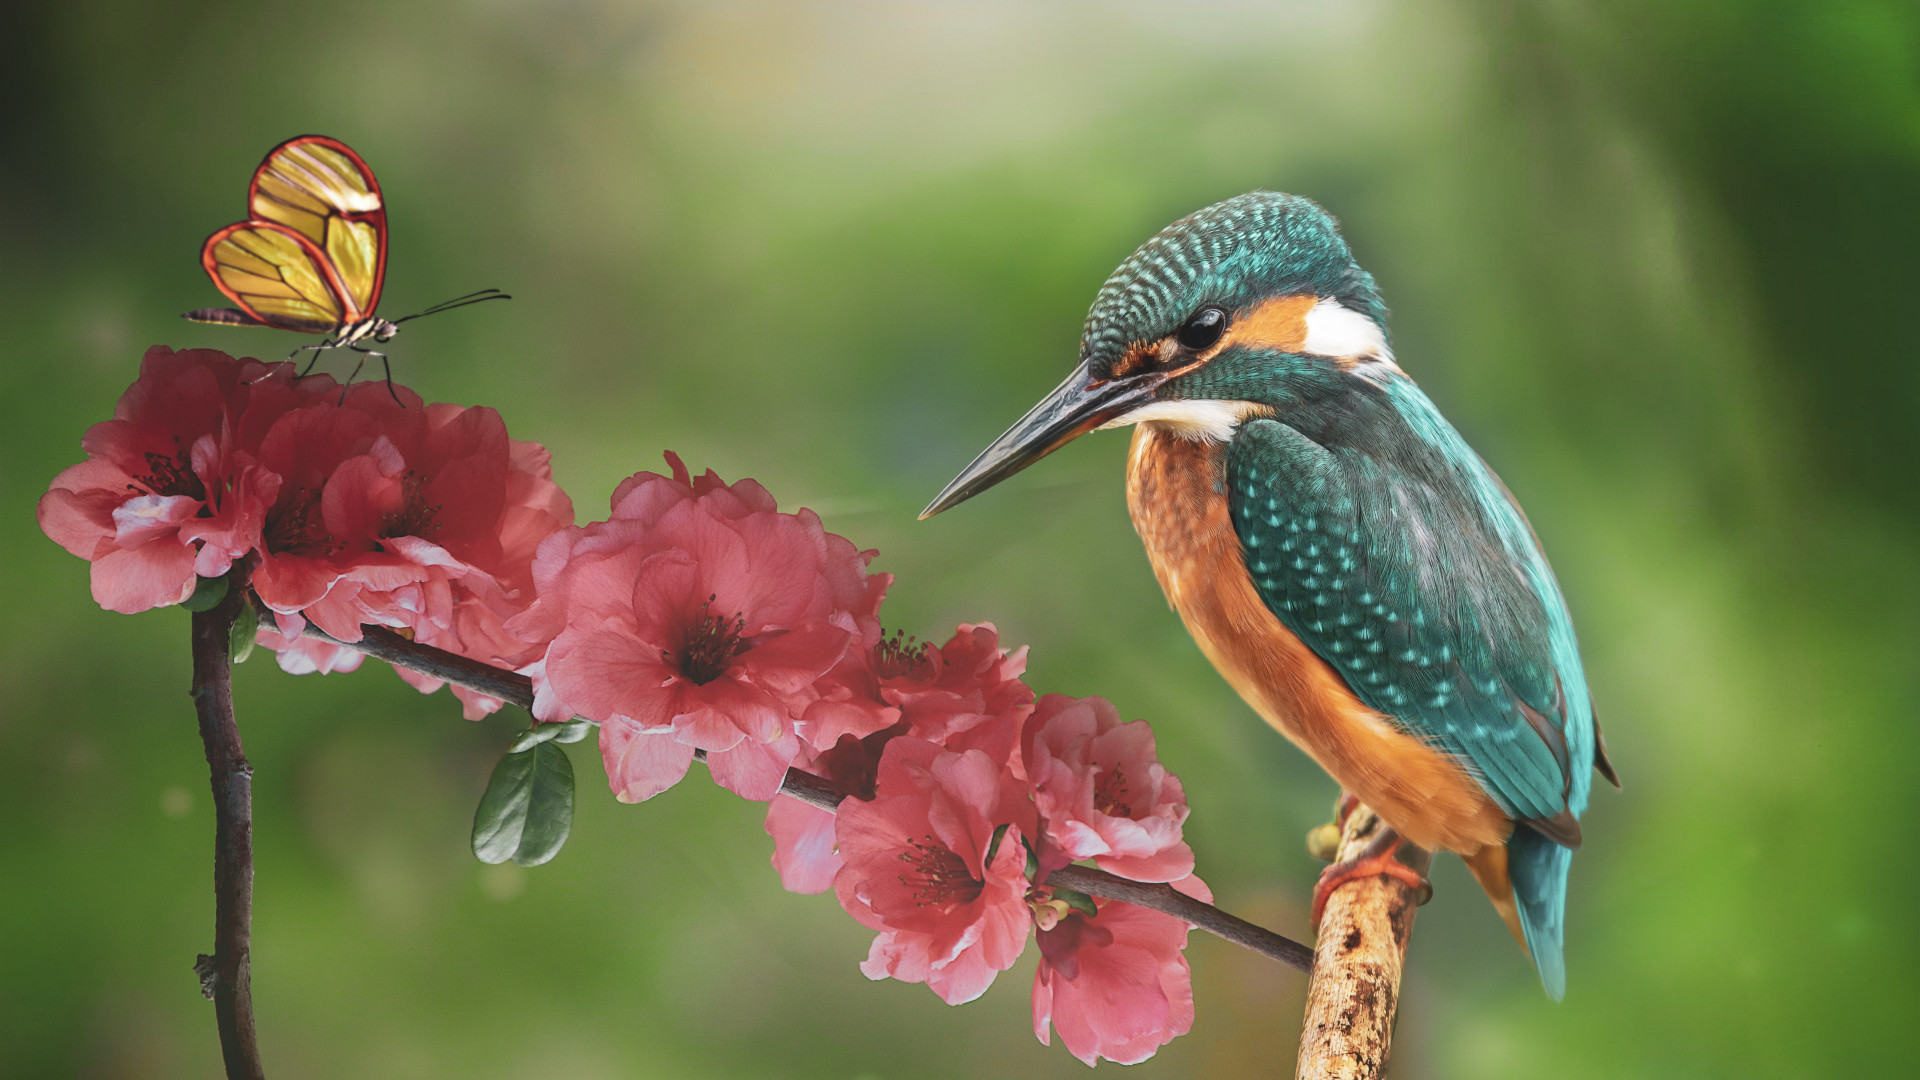 Kingfisher and the butterfly wallpaper 1920x1080